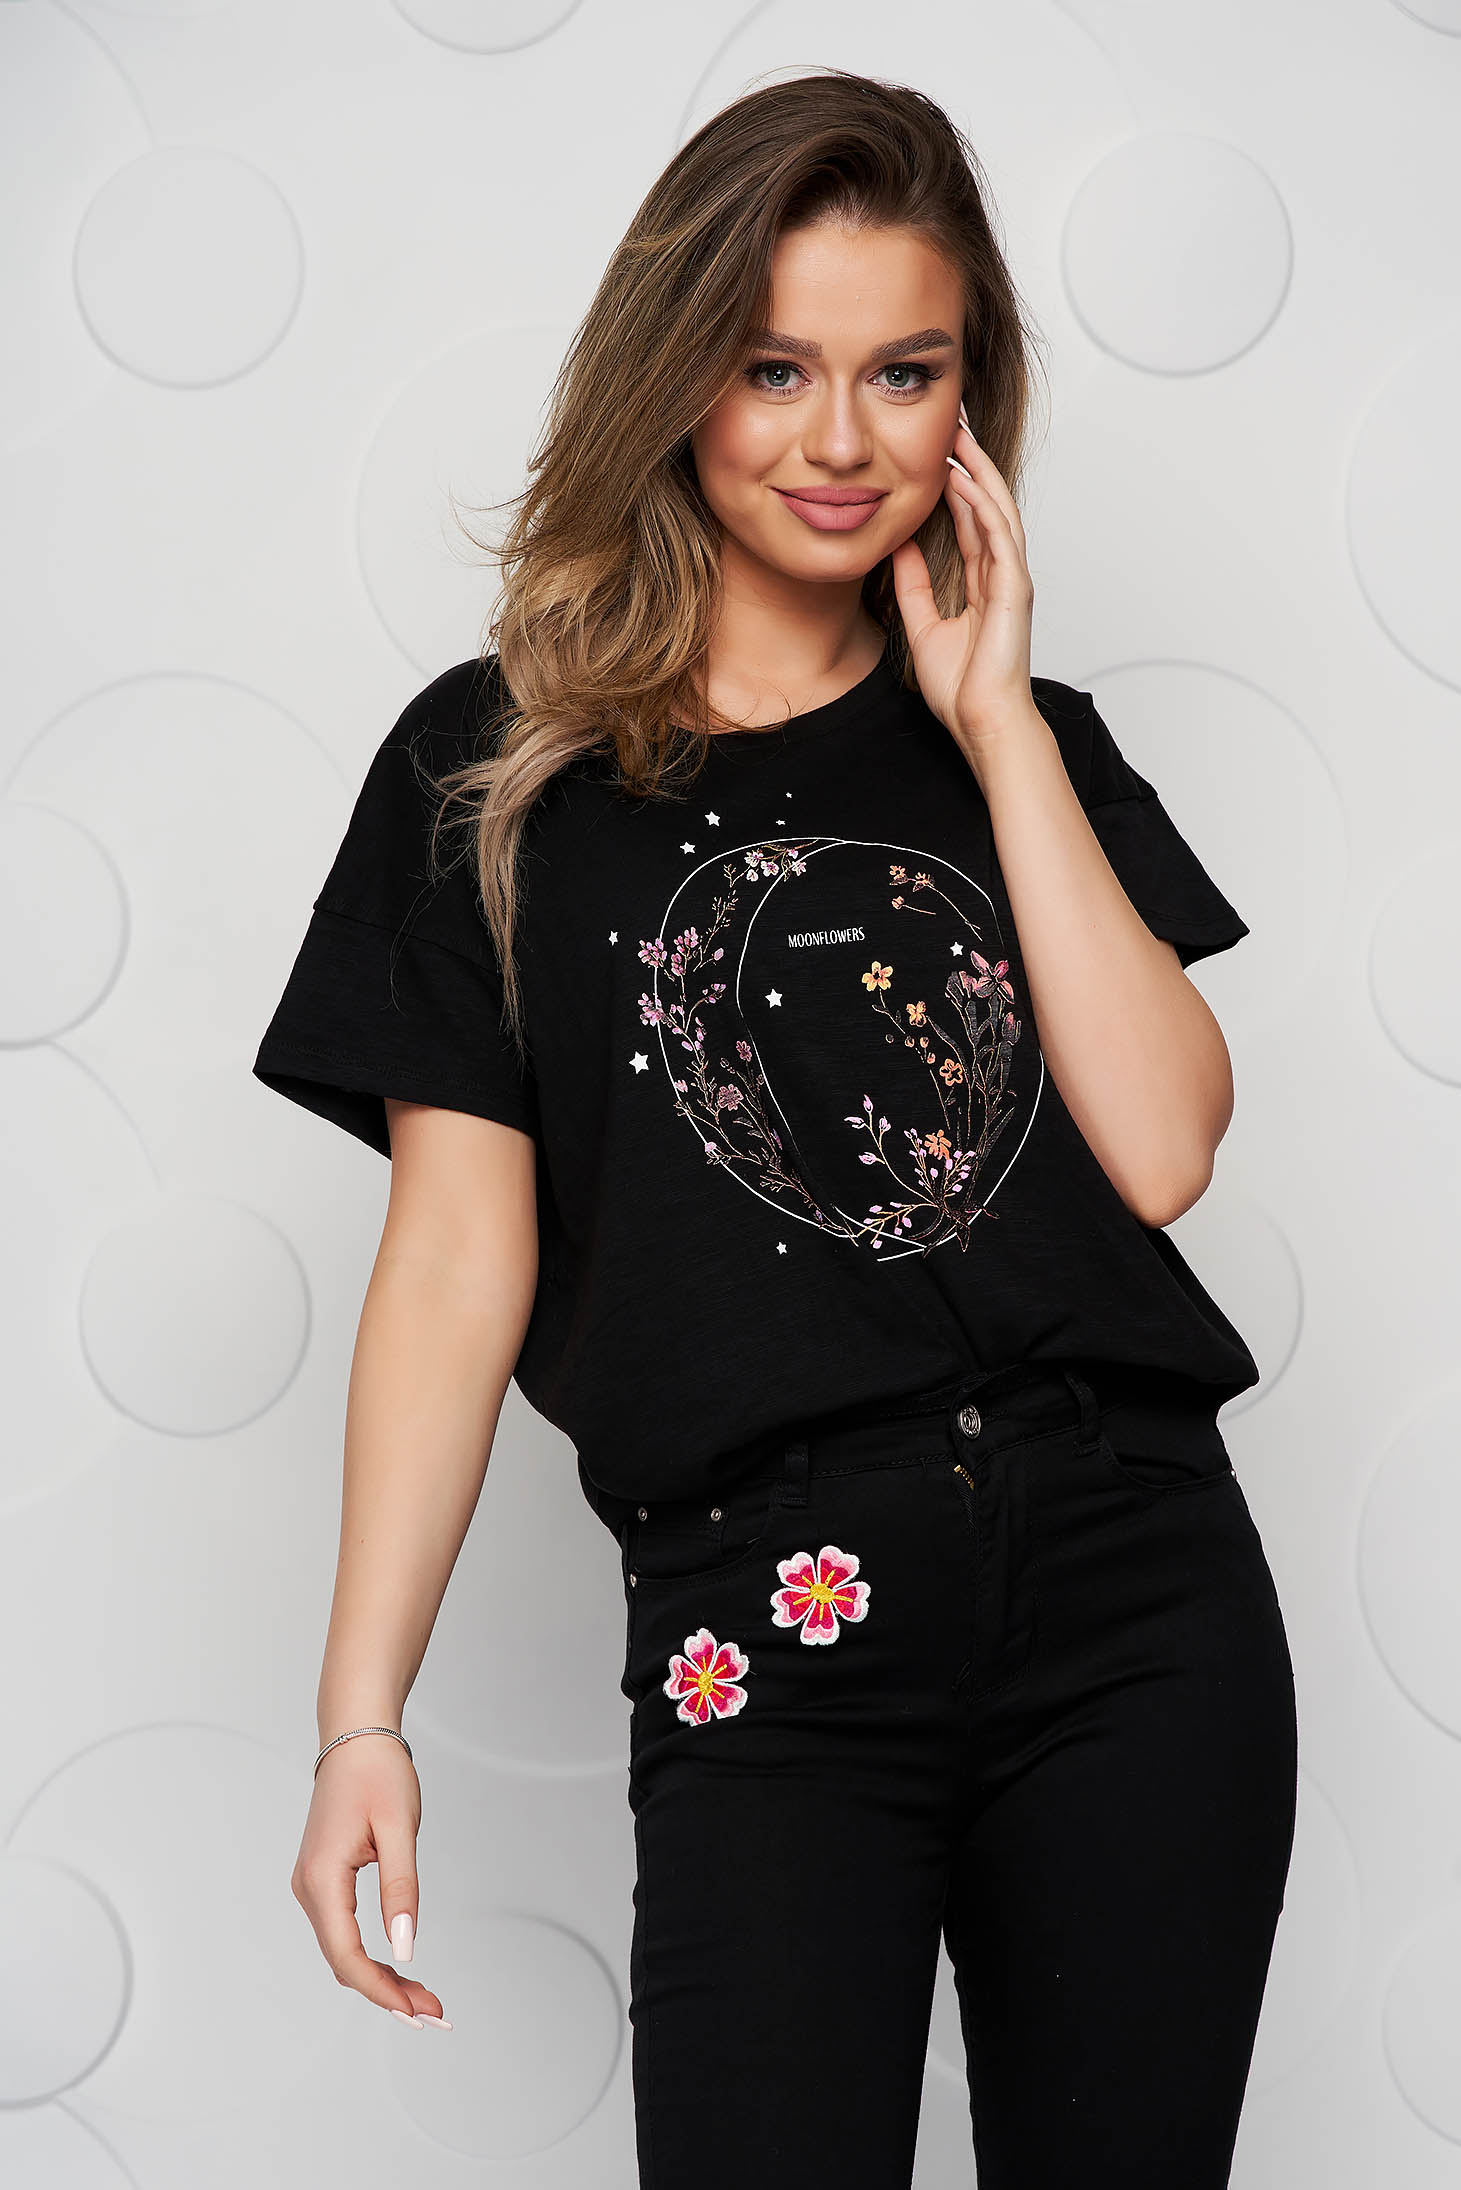 Black t-shirt cotton loose fit with rounded cleavage